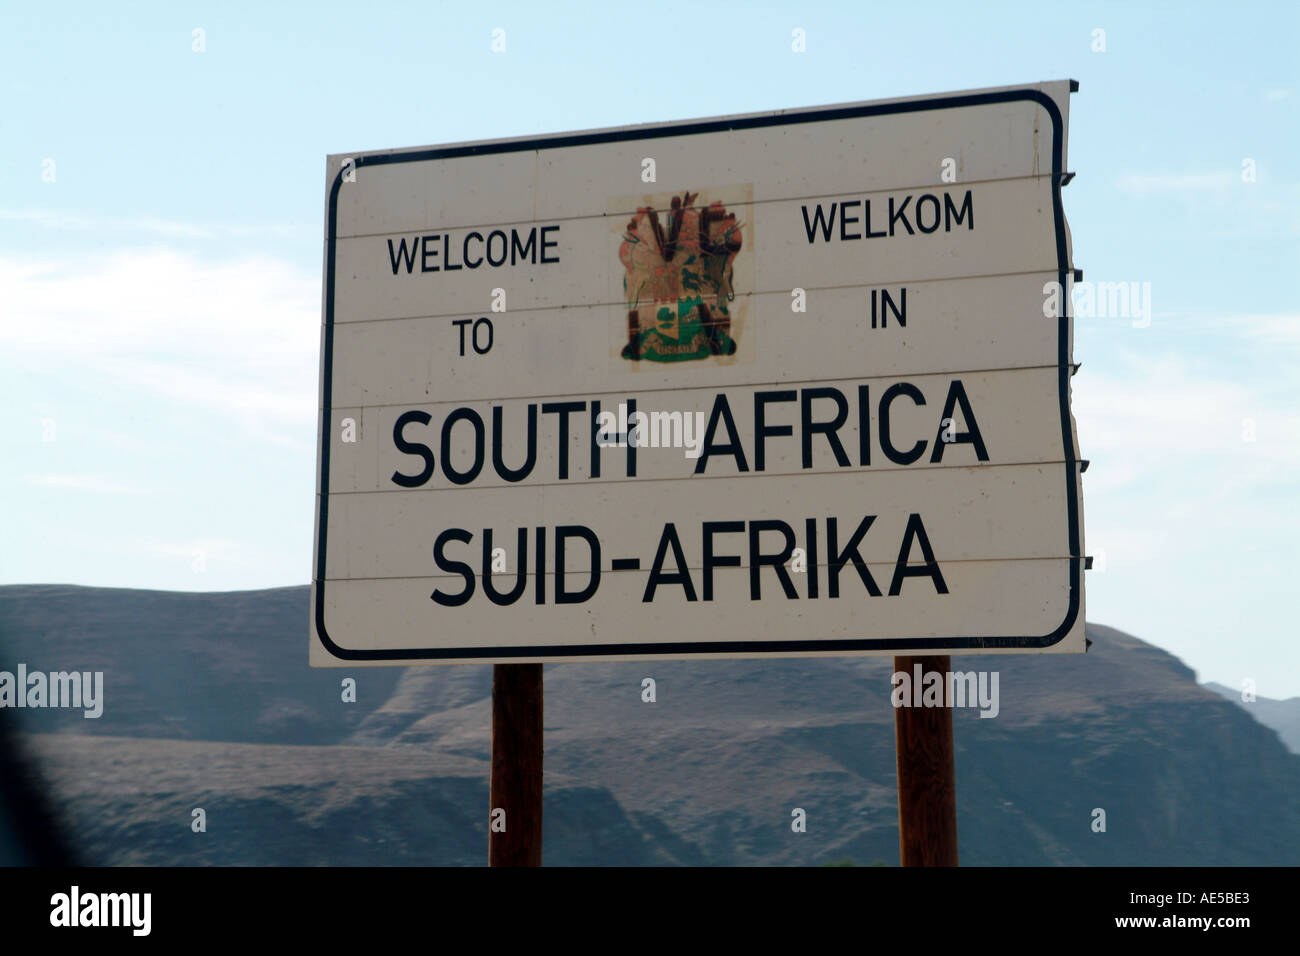 South Africa Border with Namiba Welcome Sign - Stock Image